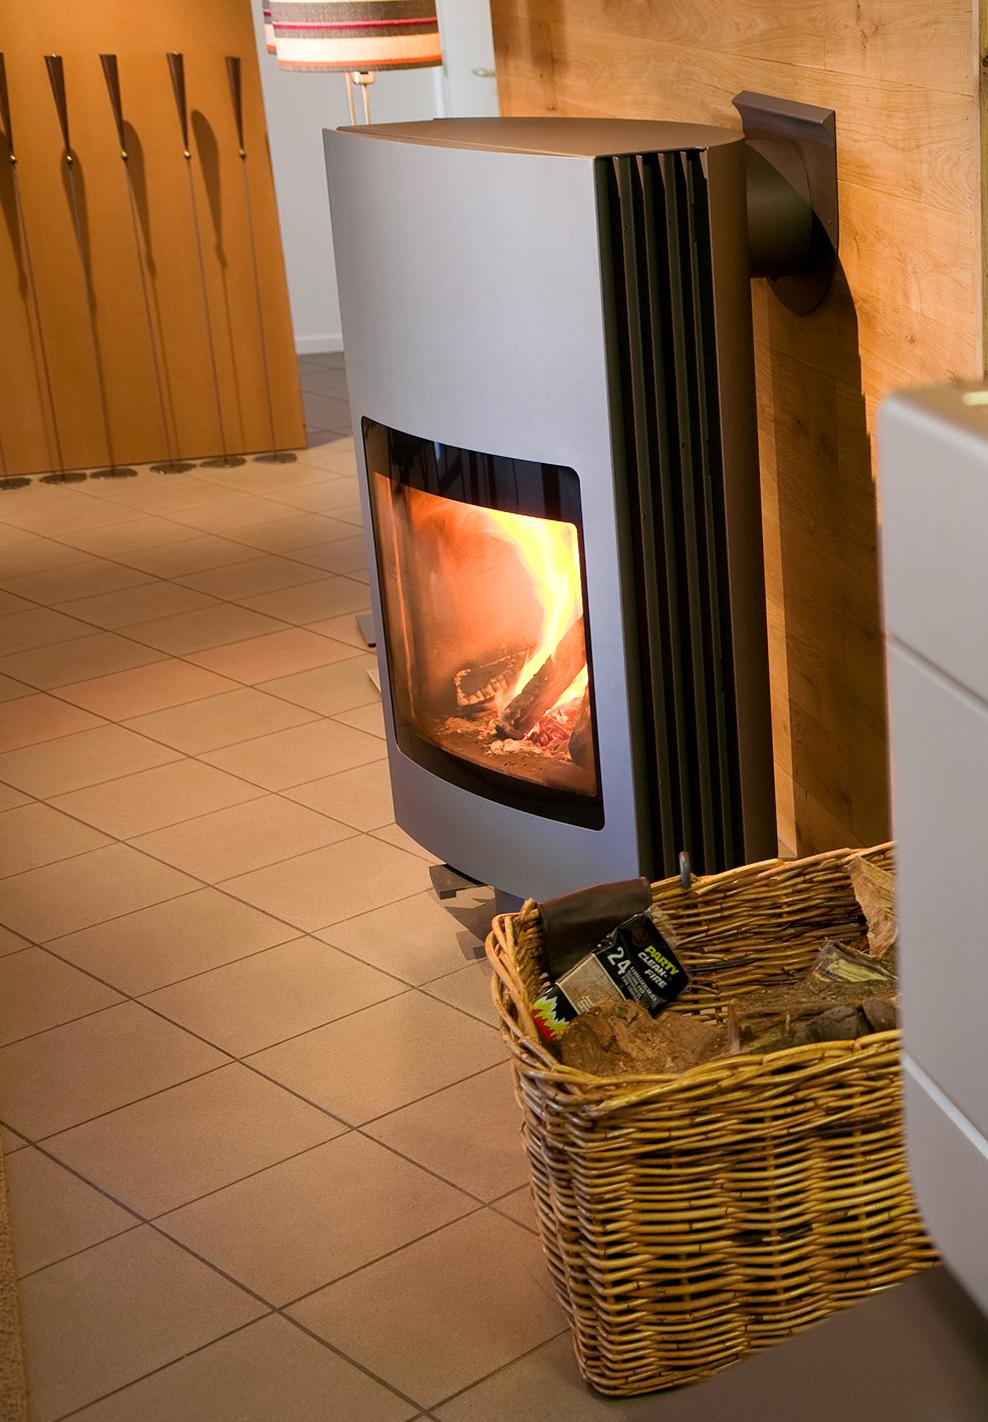 Contemporary-Modern-Glass-Fronted-Wood-Burning-Fire-Fuga eL. Fuga eL rear  flue ... - Harrie Leenders Fuga EL Rotatable Wood Burning Stove 11.6kW